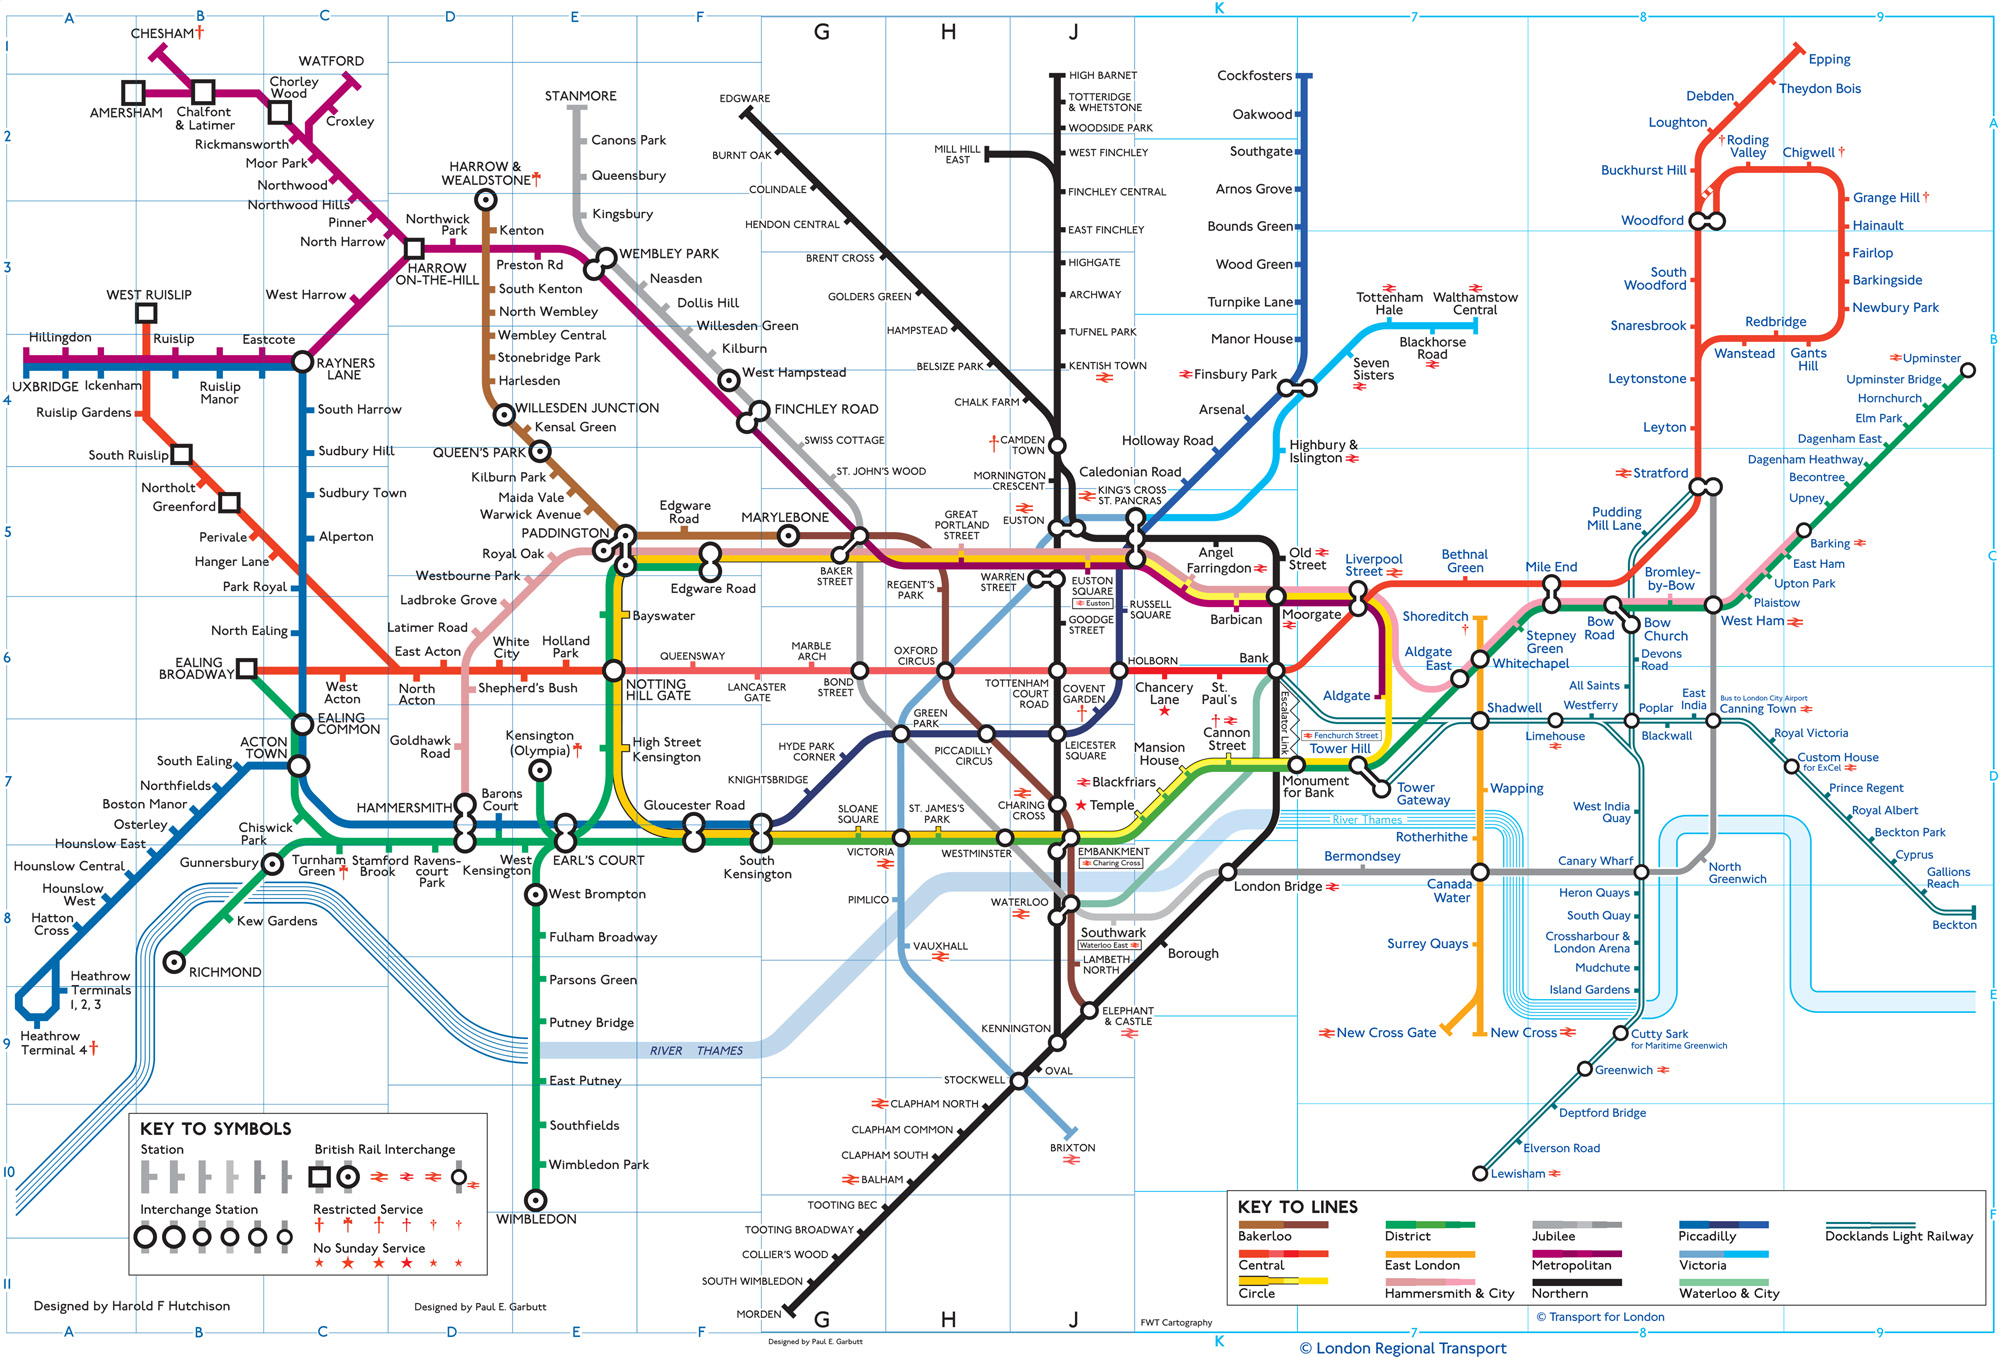 from page 102 a composite map showing from left to right the change in london underground map style from the 1960s to the 2000s